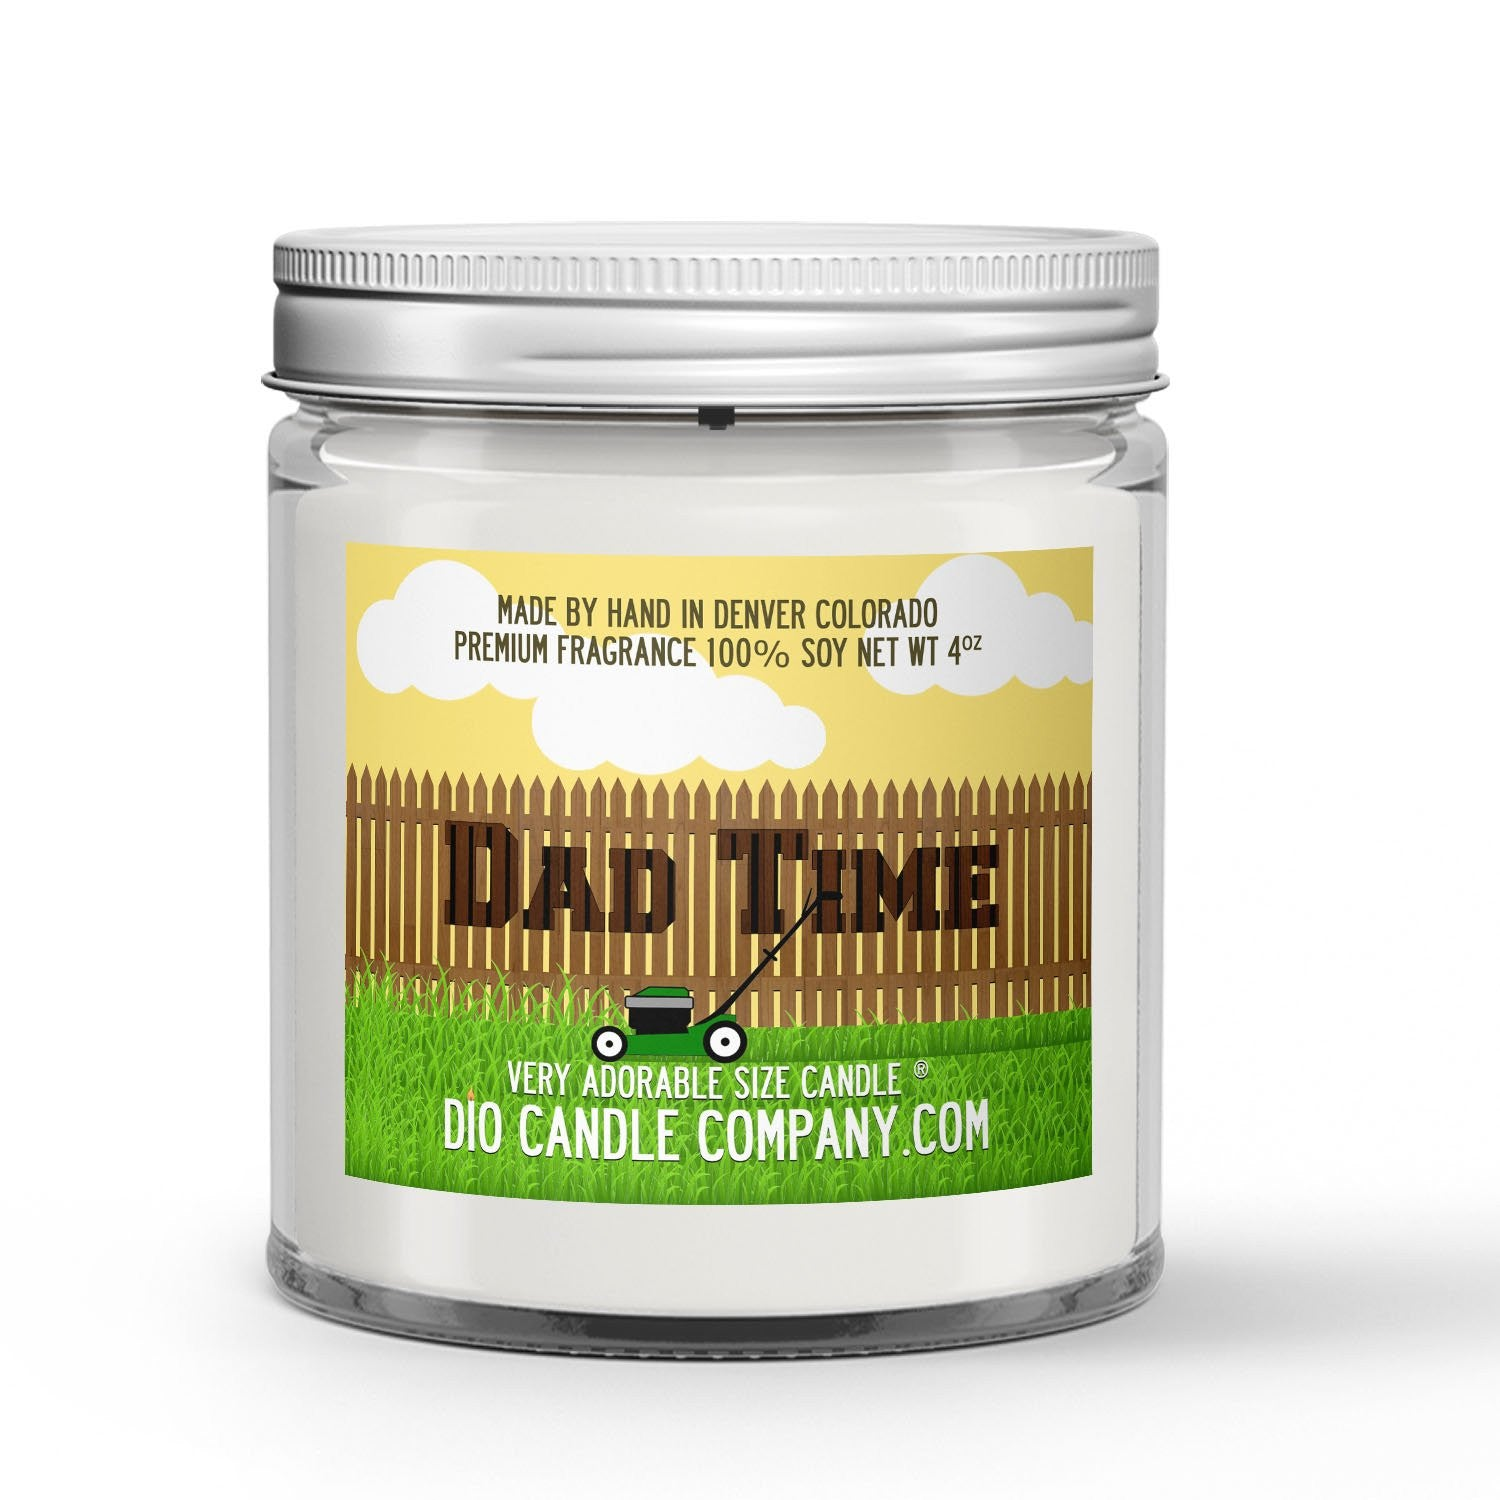 Dad Time Candle - Grass - Sprinkler Water - Earth - 4oz Very Adorable Size Candle® - Dio Candle Company